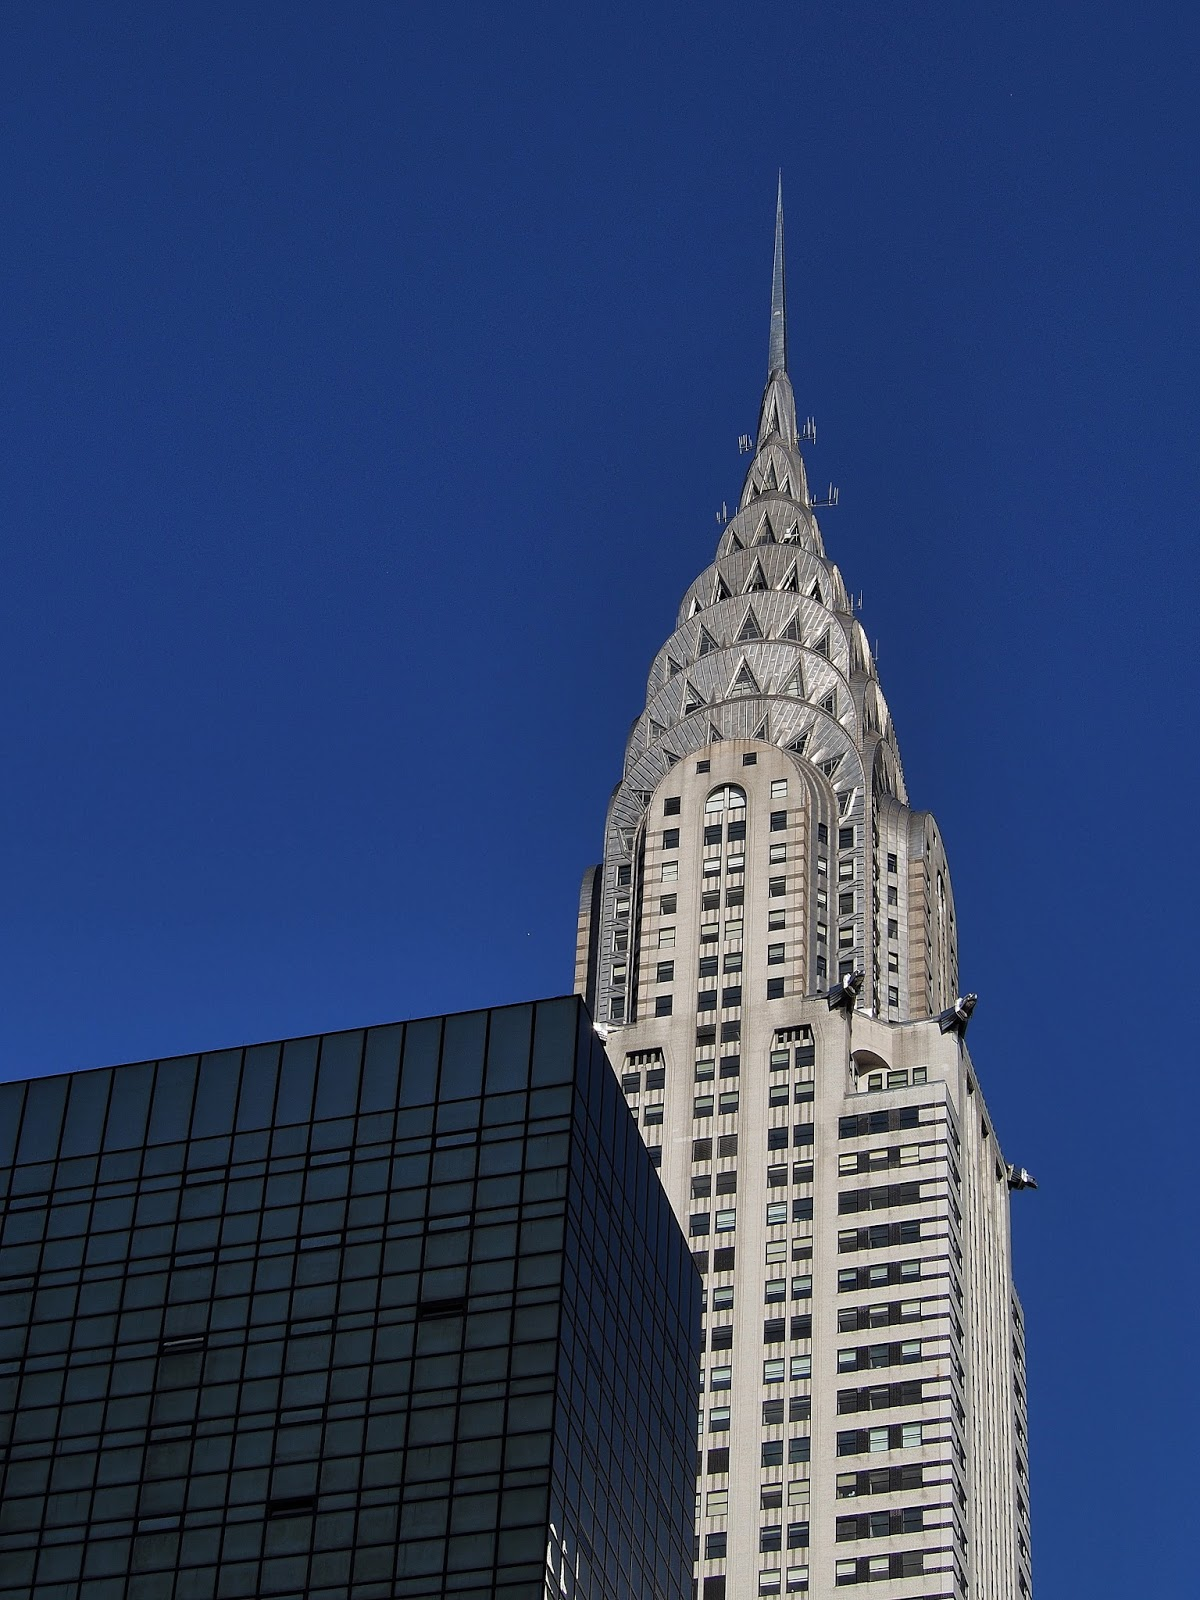 Art Deco meets Modern Glass, #chryslerbuilding #artdeco #nyc #architecture 2014